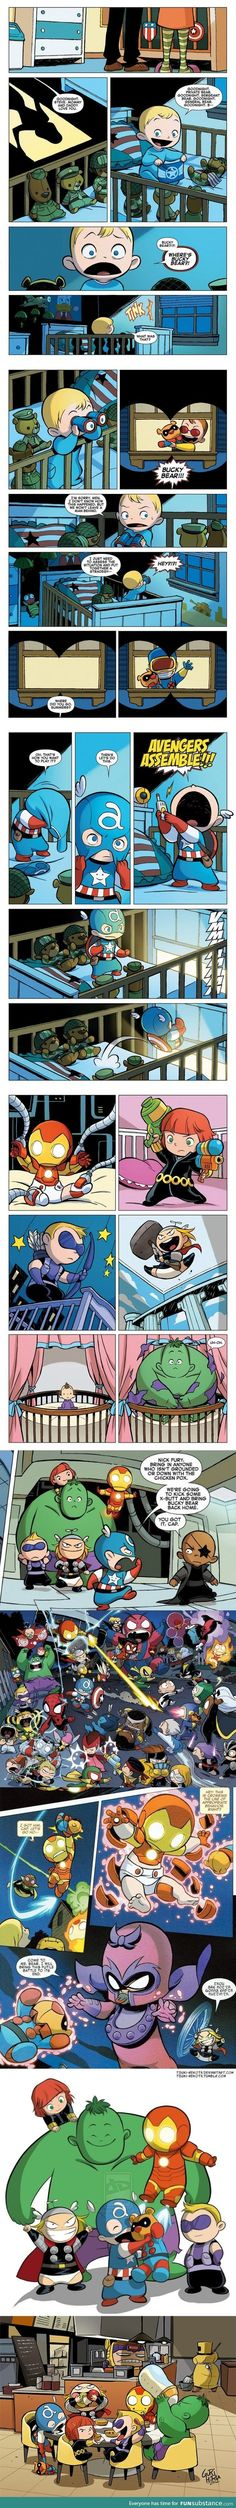 Baby Avengers! This is the cutest thing I've seen in a while